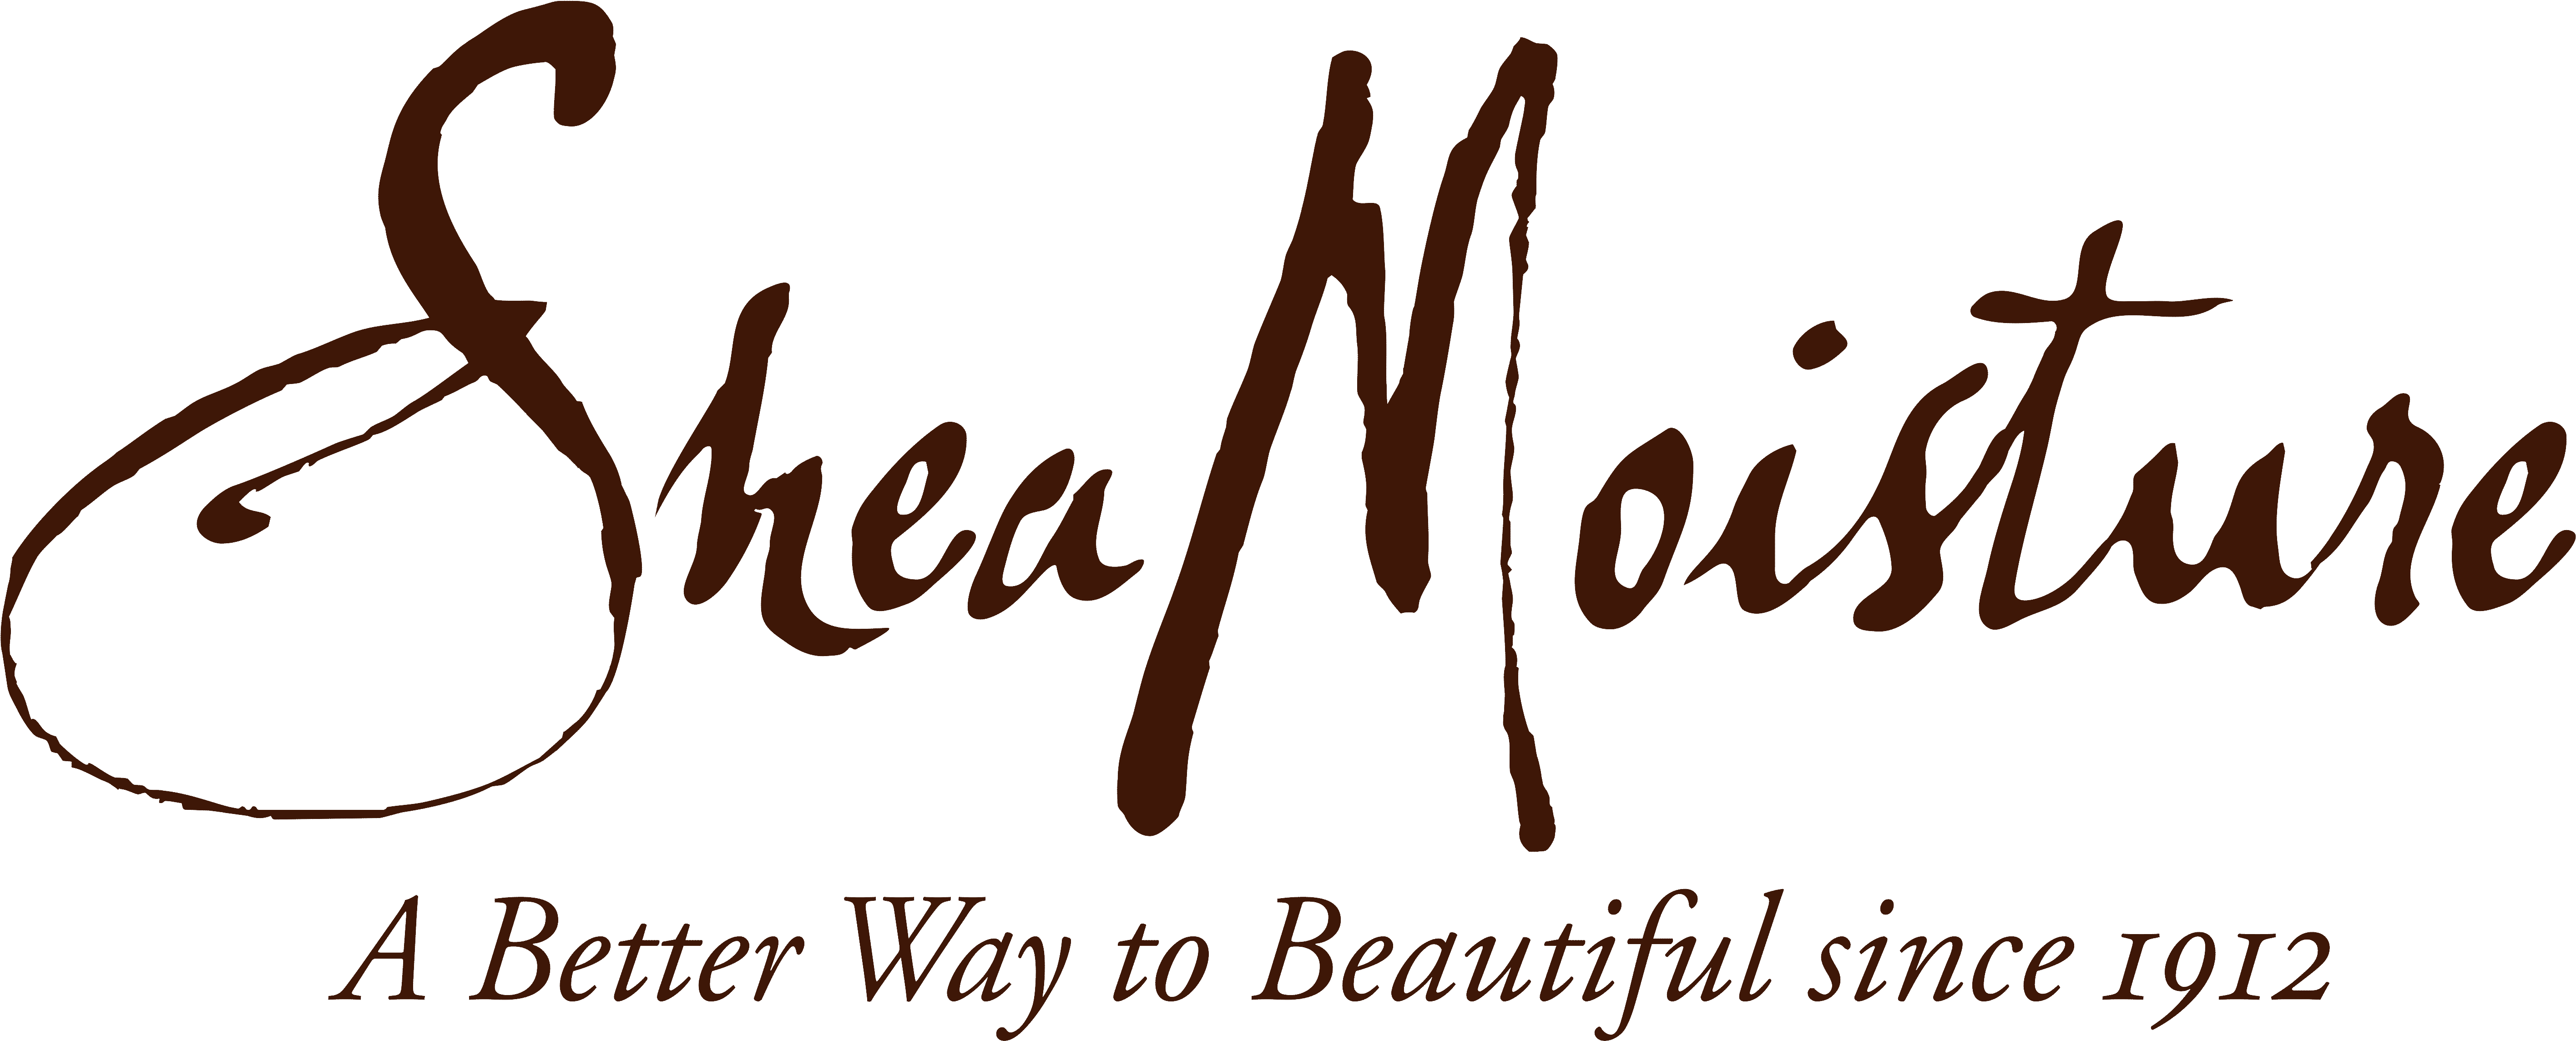 Download Brand Shea Moisture Logo - Full Size PNG Image - PNGkit